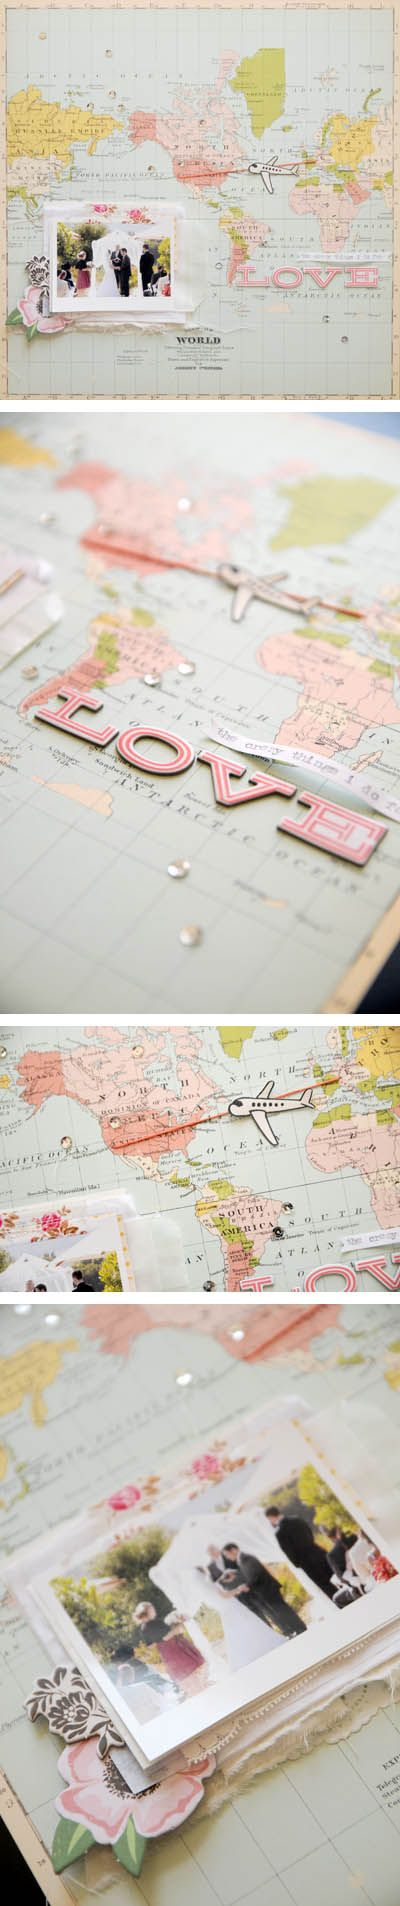 wedding invitations map%0A Not for a wedding but for when I travel  Love the idea of making a